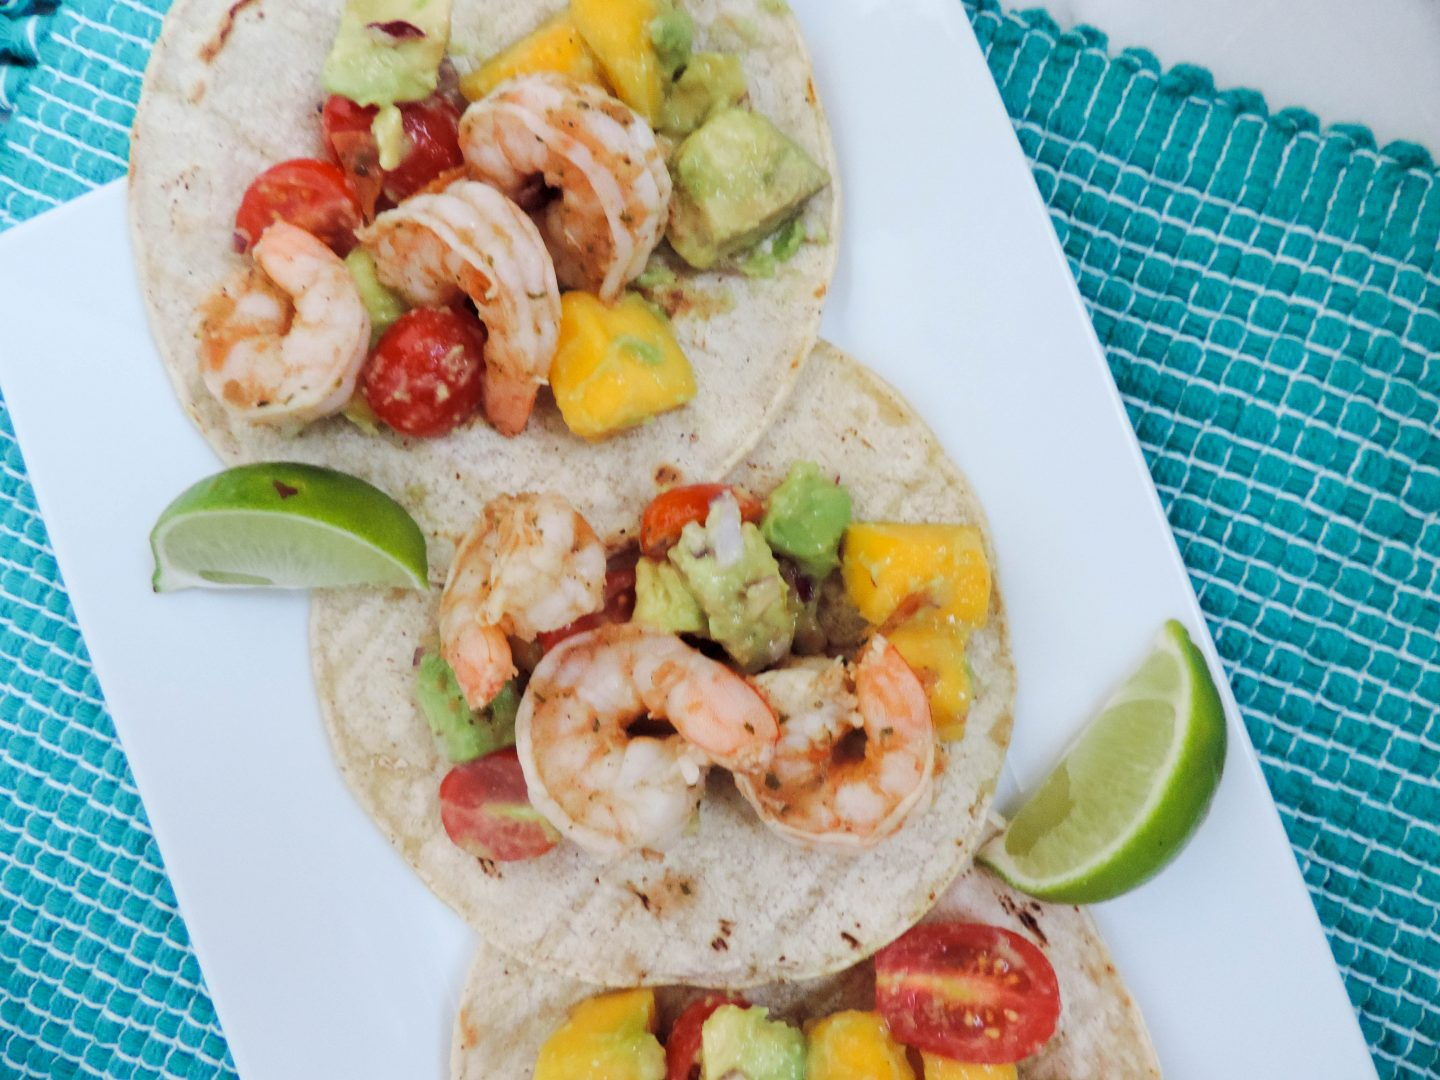 Mango-Avocado Shrimp Tacos with Nola's Salsa